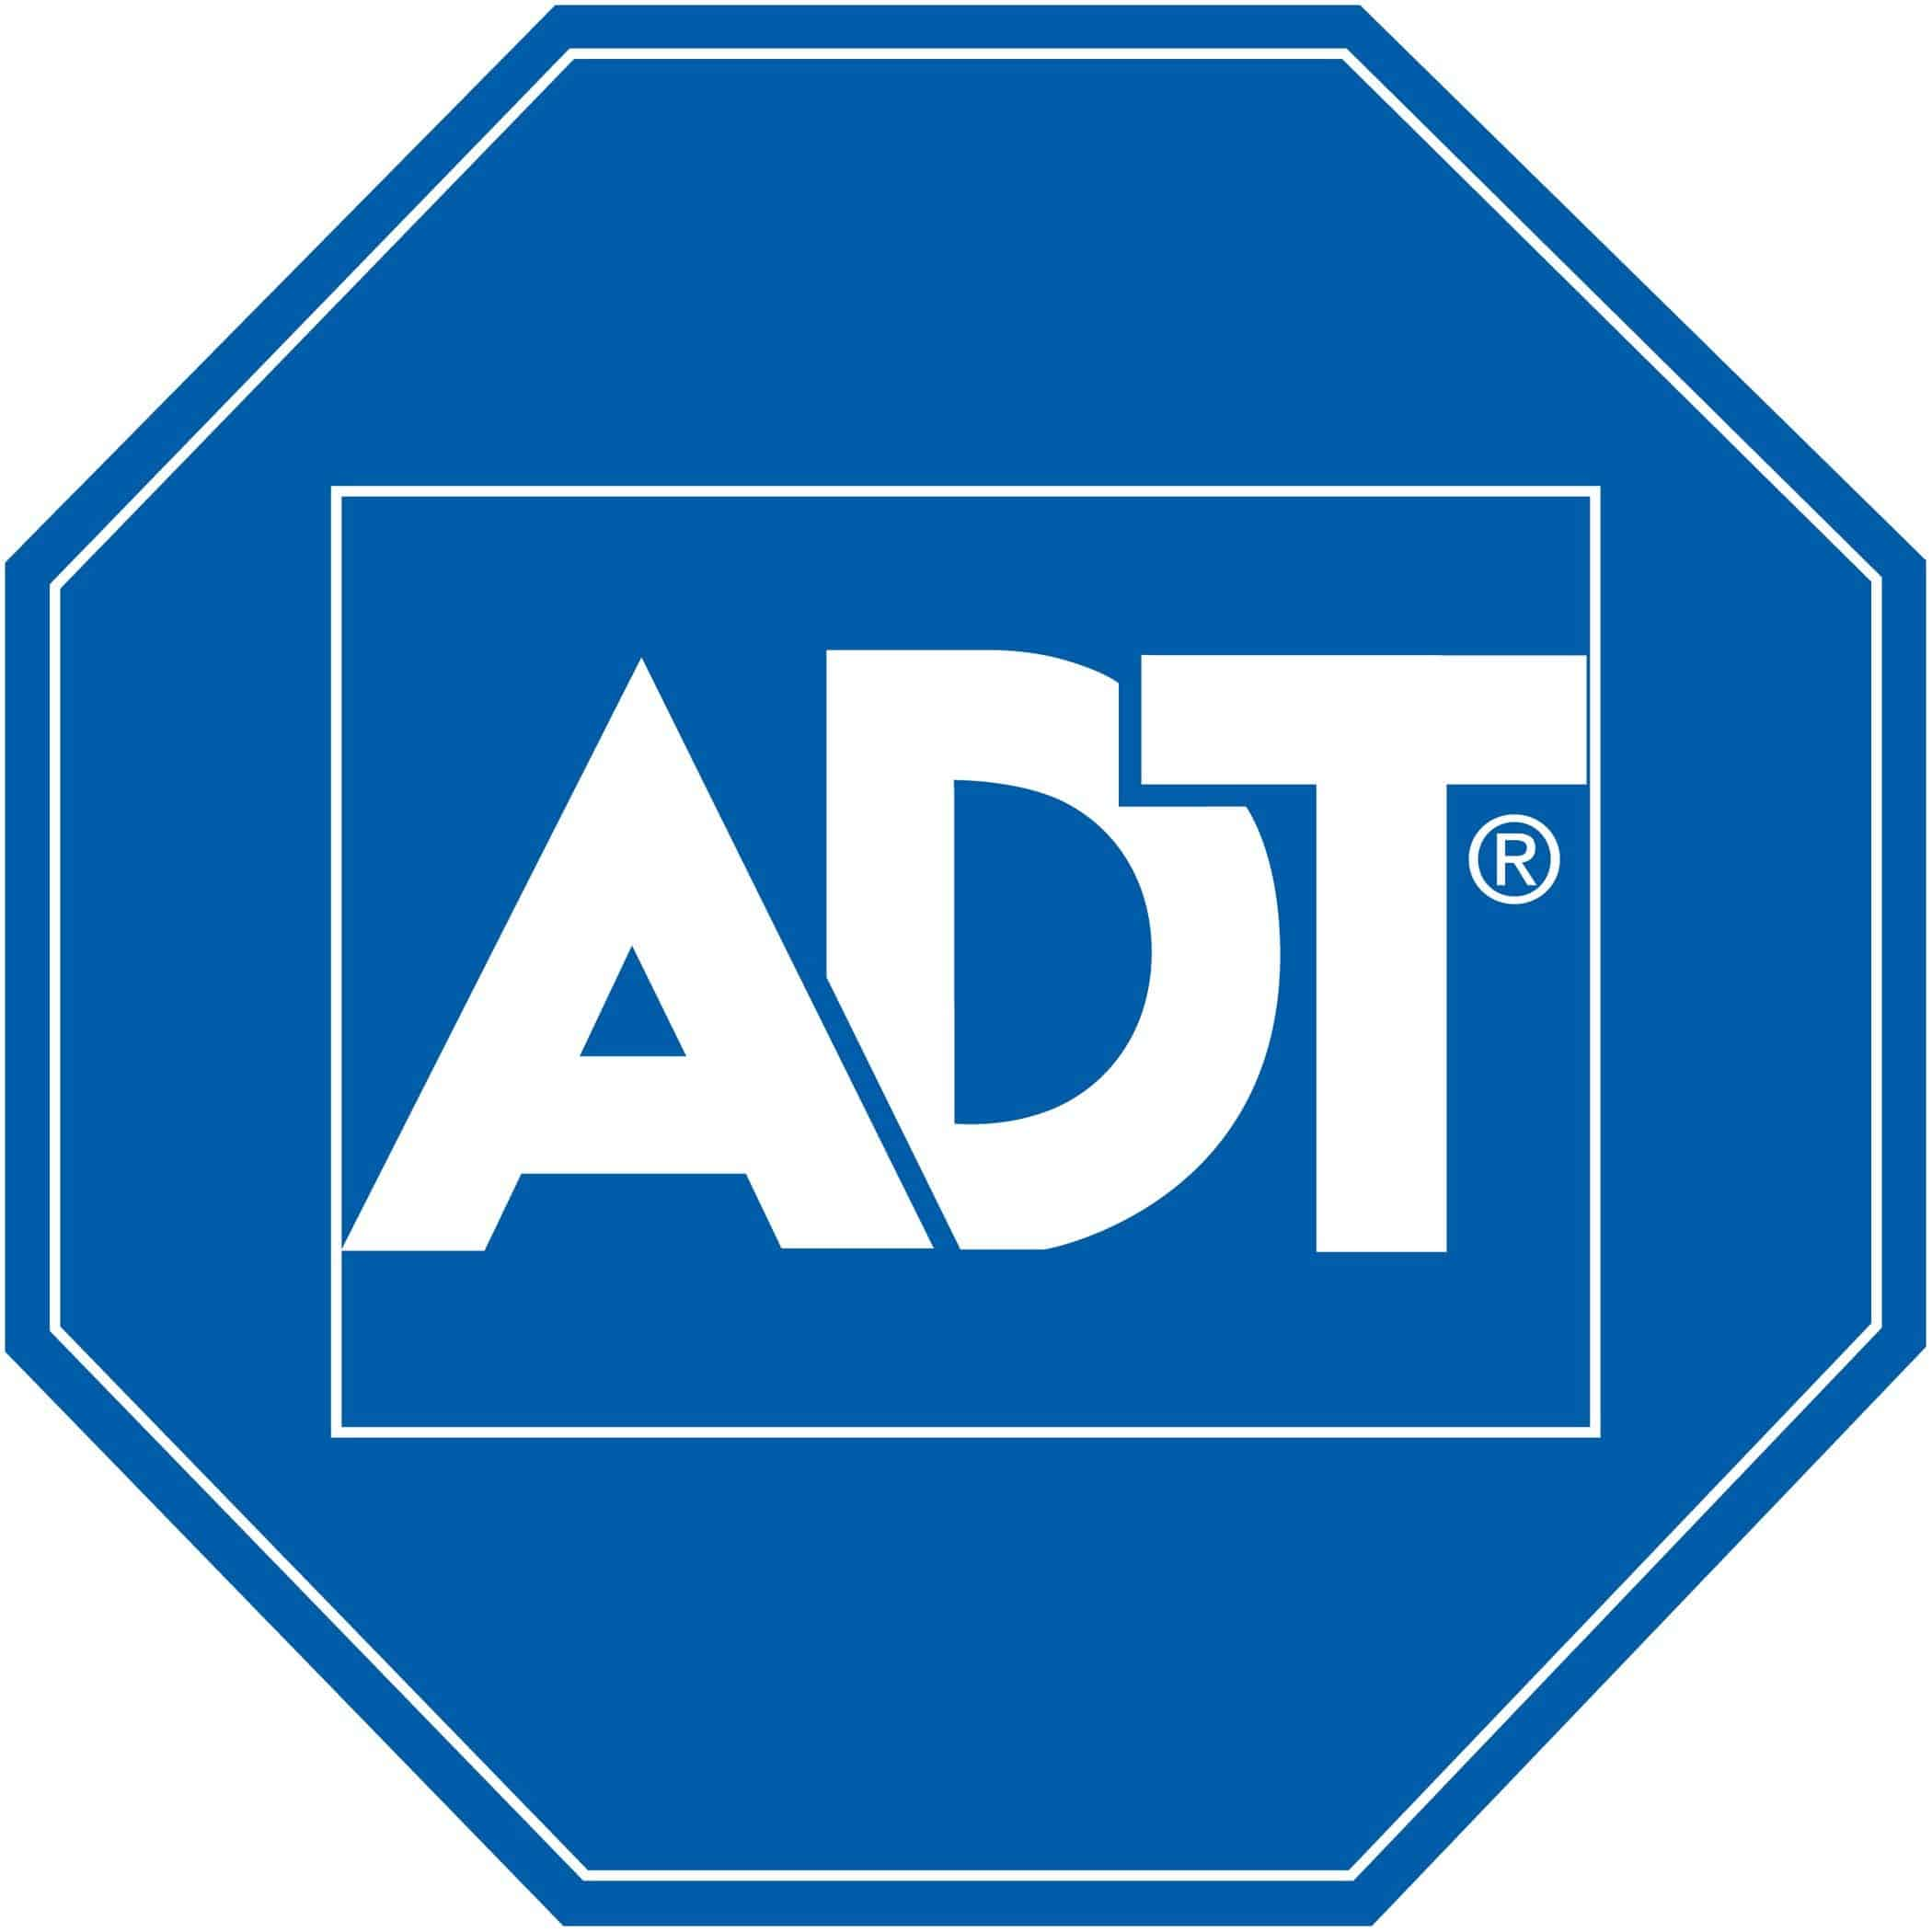 ADT Logo [EPS – Security Systems] Vector EPS Free Download, Logo, Icons, Brand Emblems